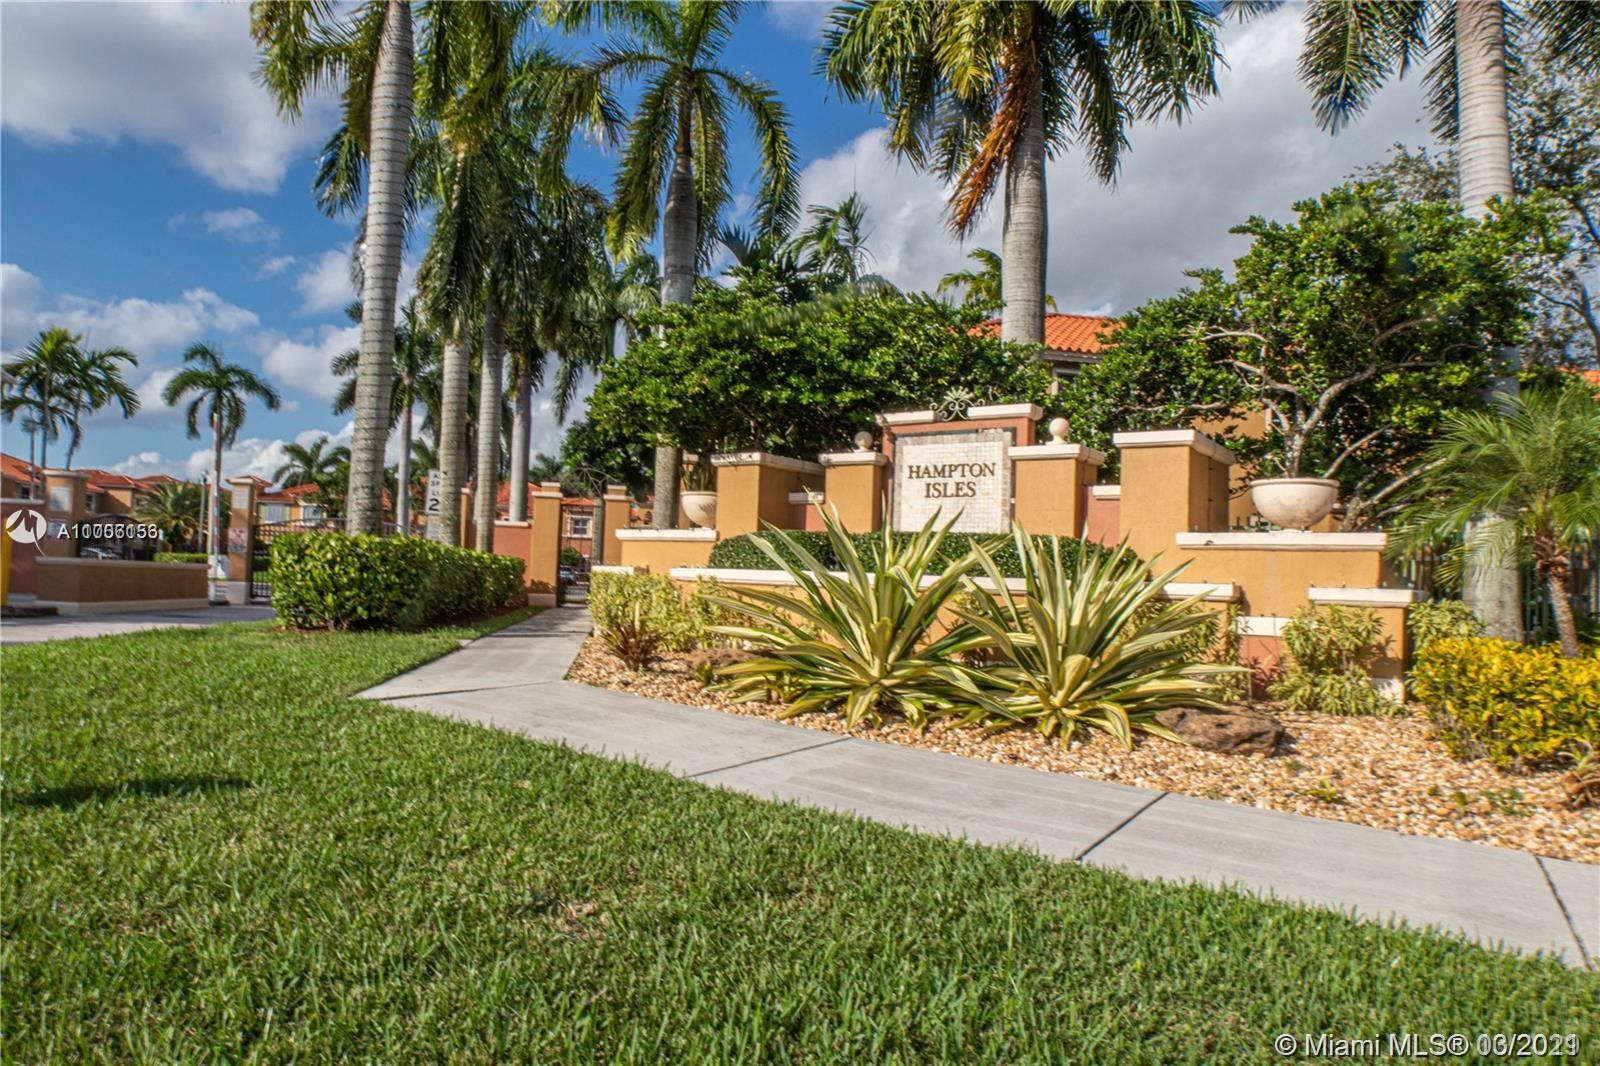 Home for sale in Hampton Isles Condo Pembroke Pines Florida